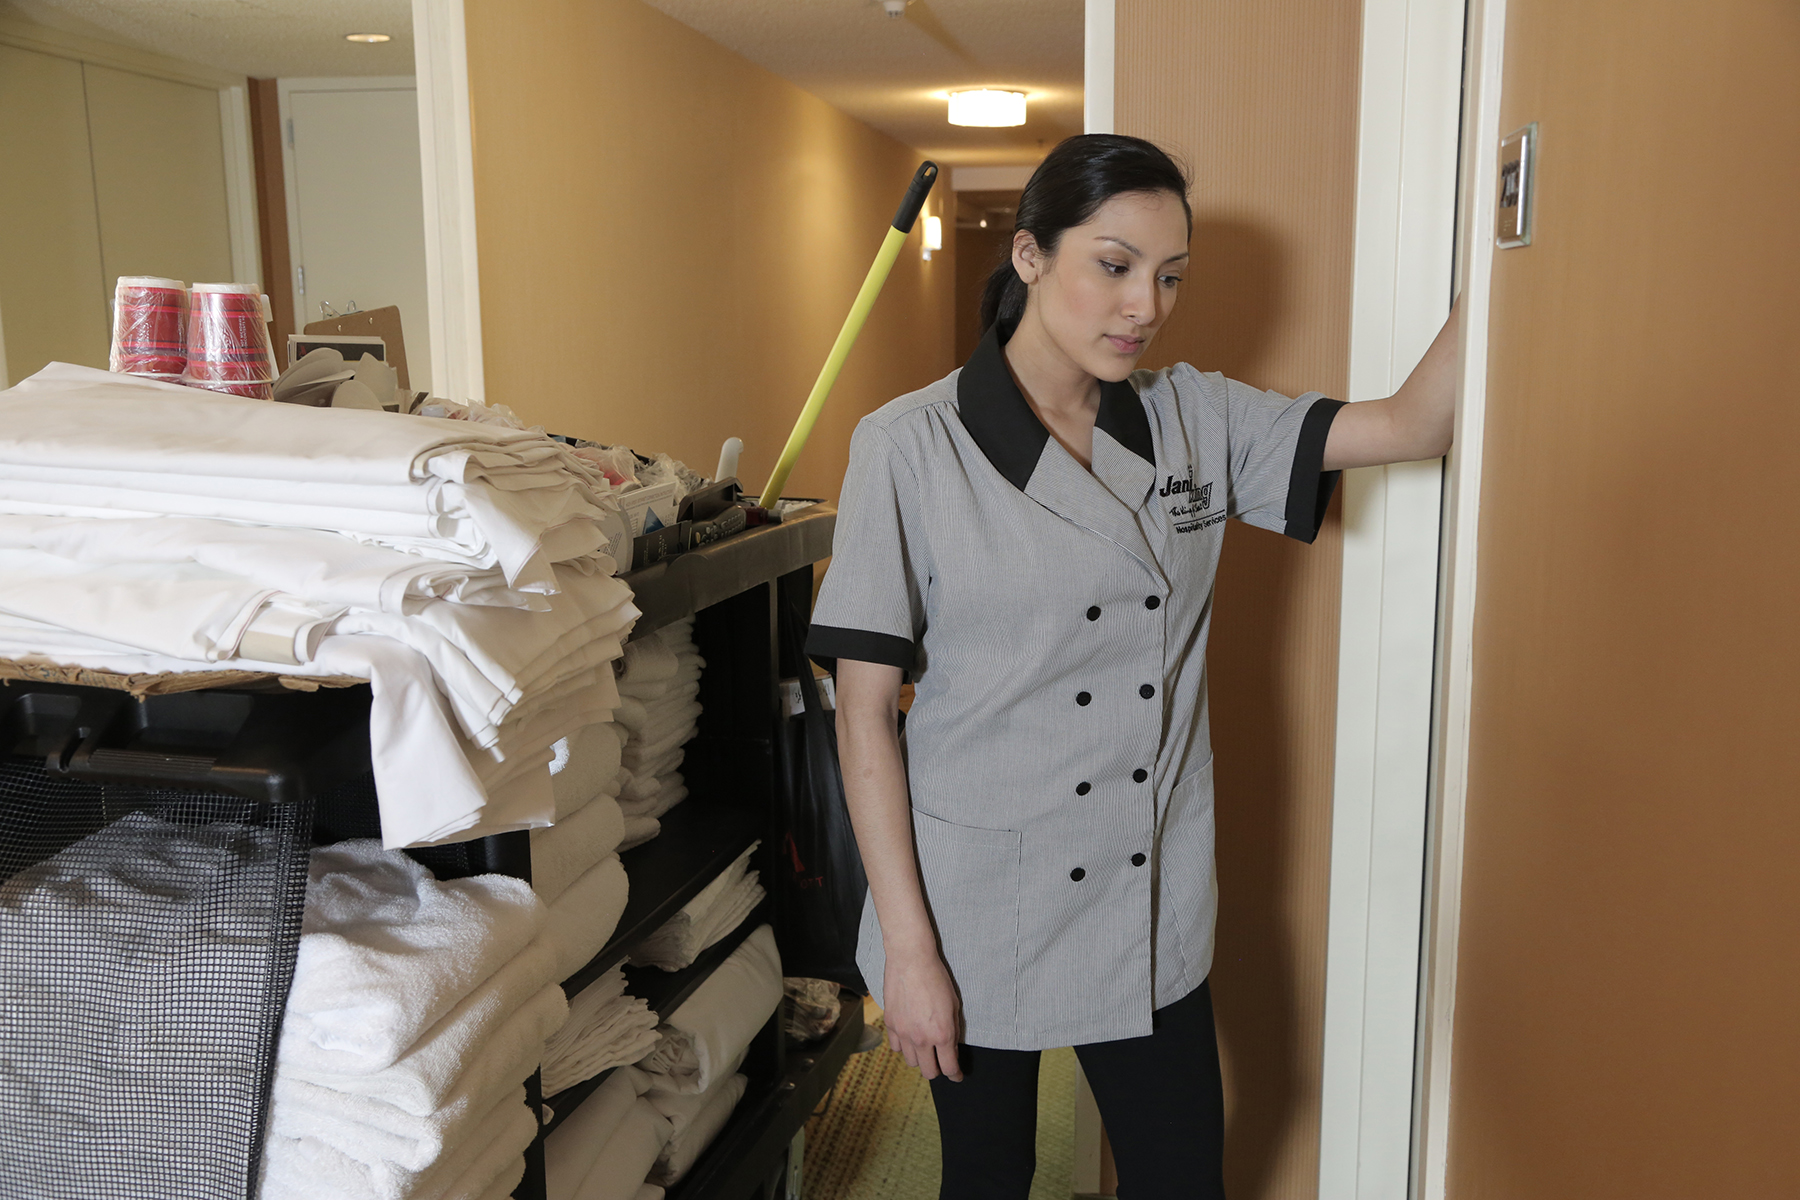 Housekeeping Openings Keeping It Clean Tips For Improving Housekeeping Operations